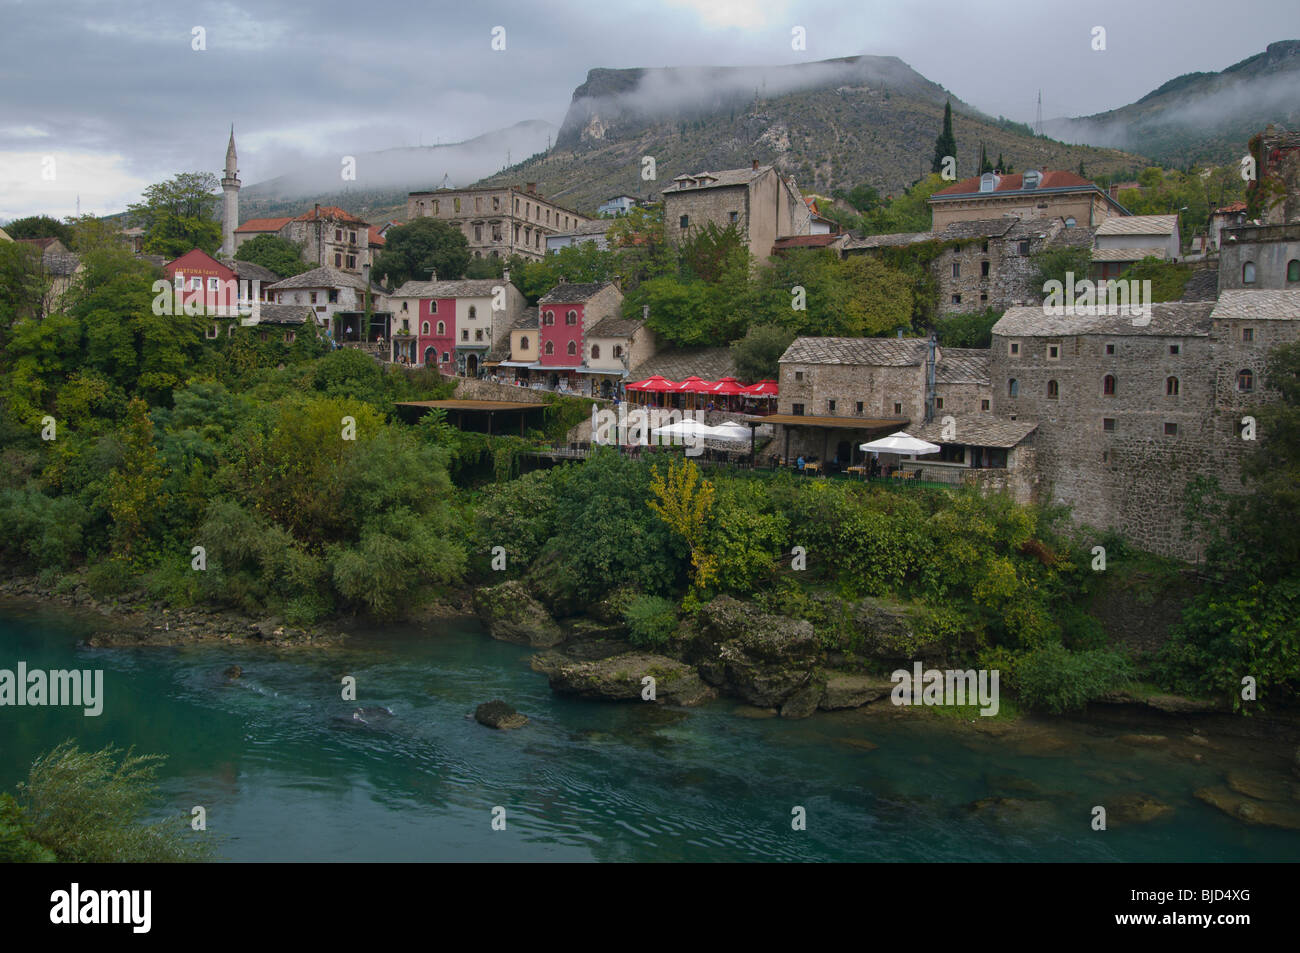 Historic Old Town of Mostar and Neretva River  in Bosnia Herzegovina - Stock Image